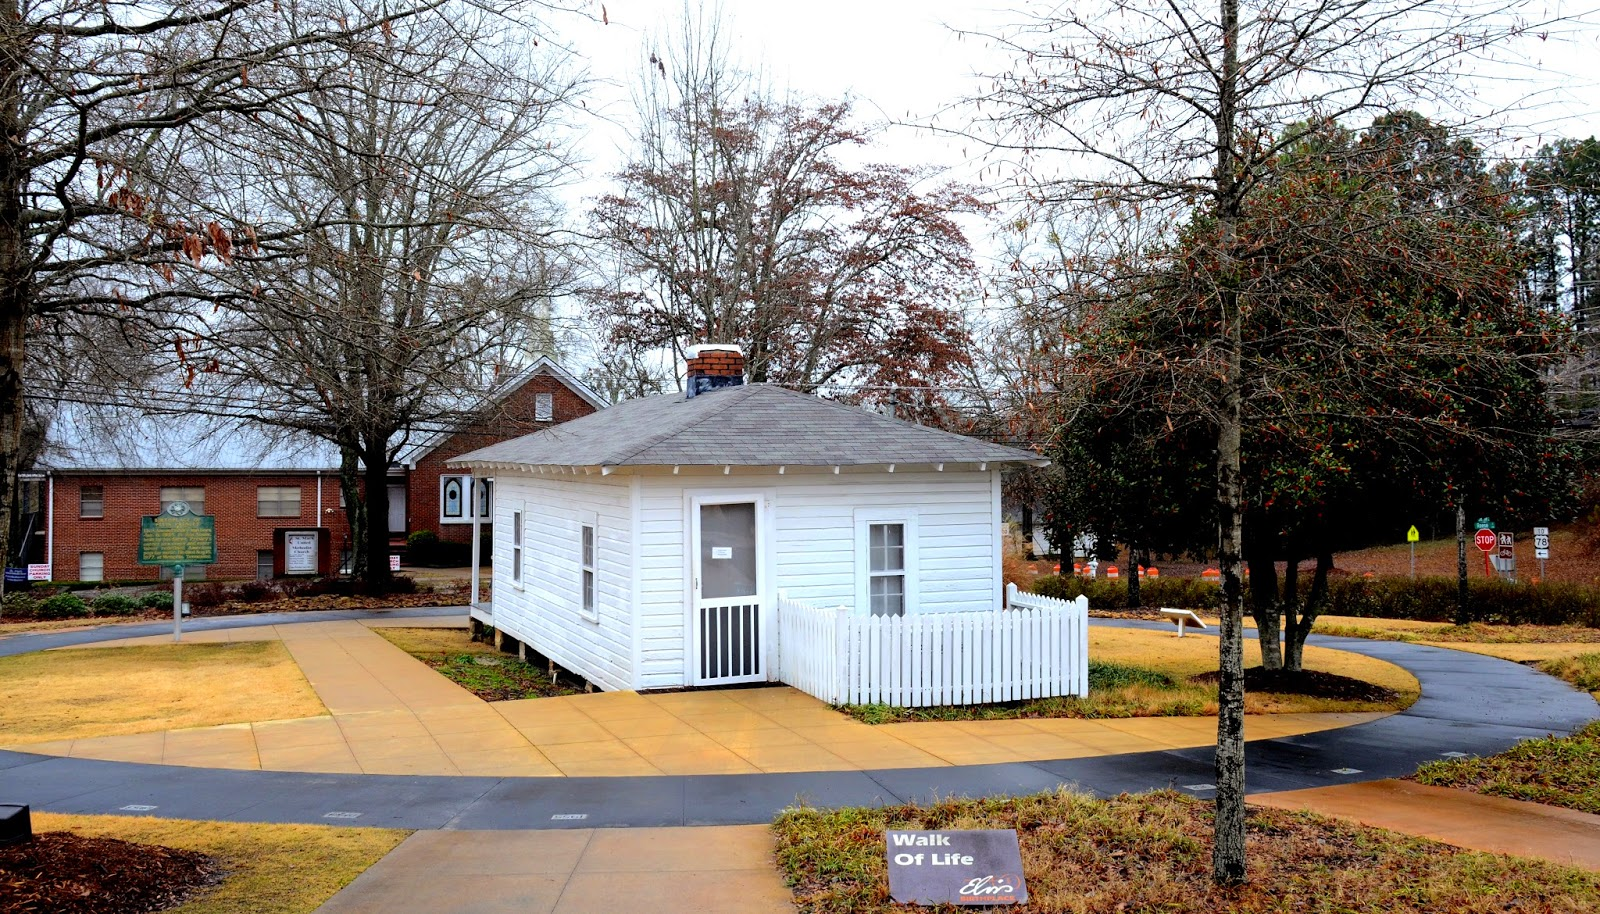 Elvis House, Mississippi, USA